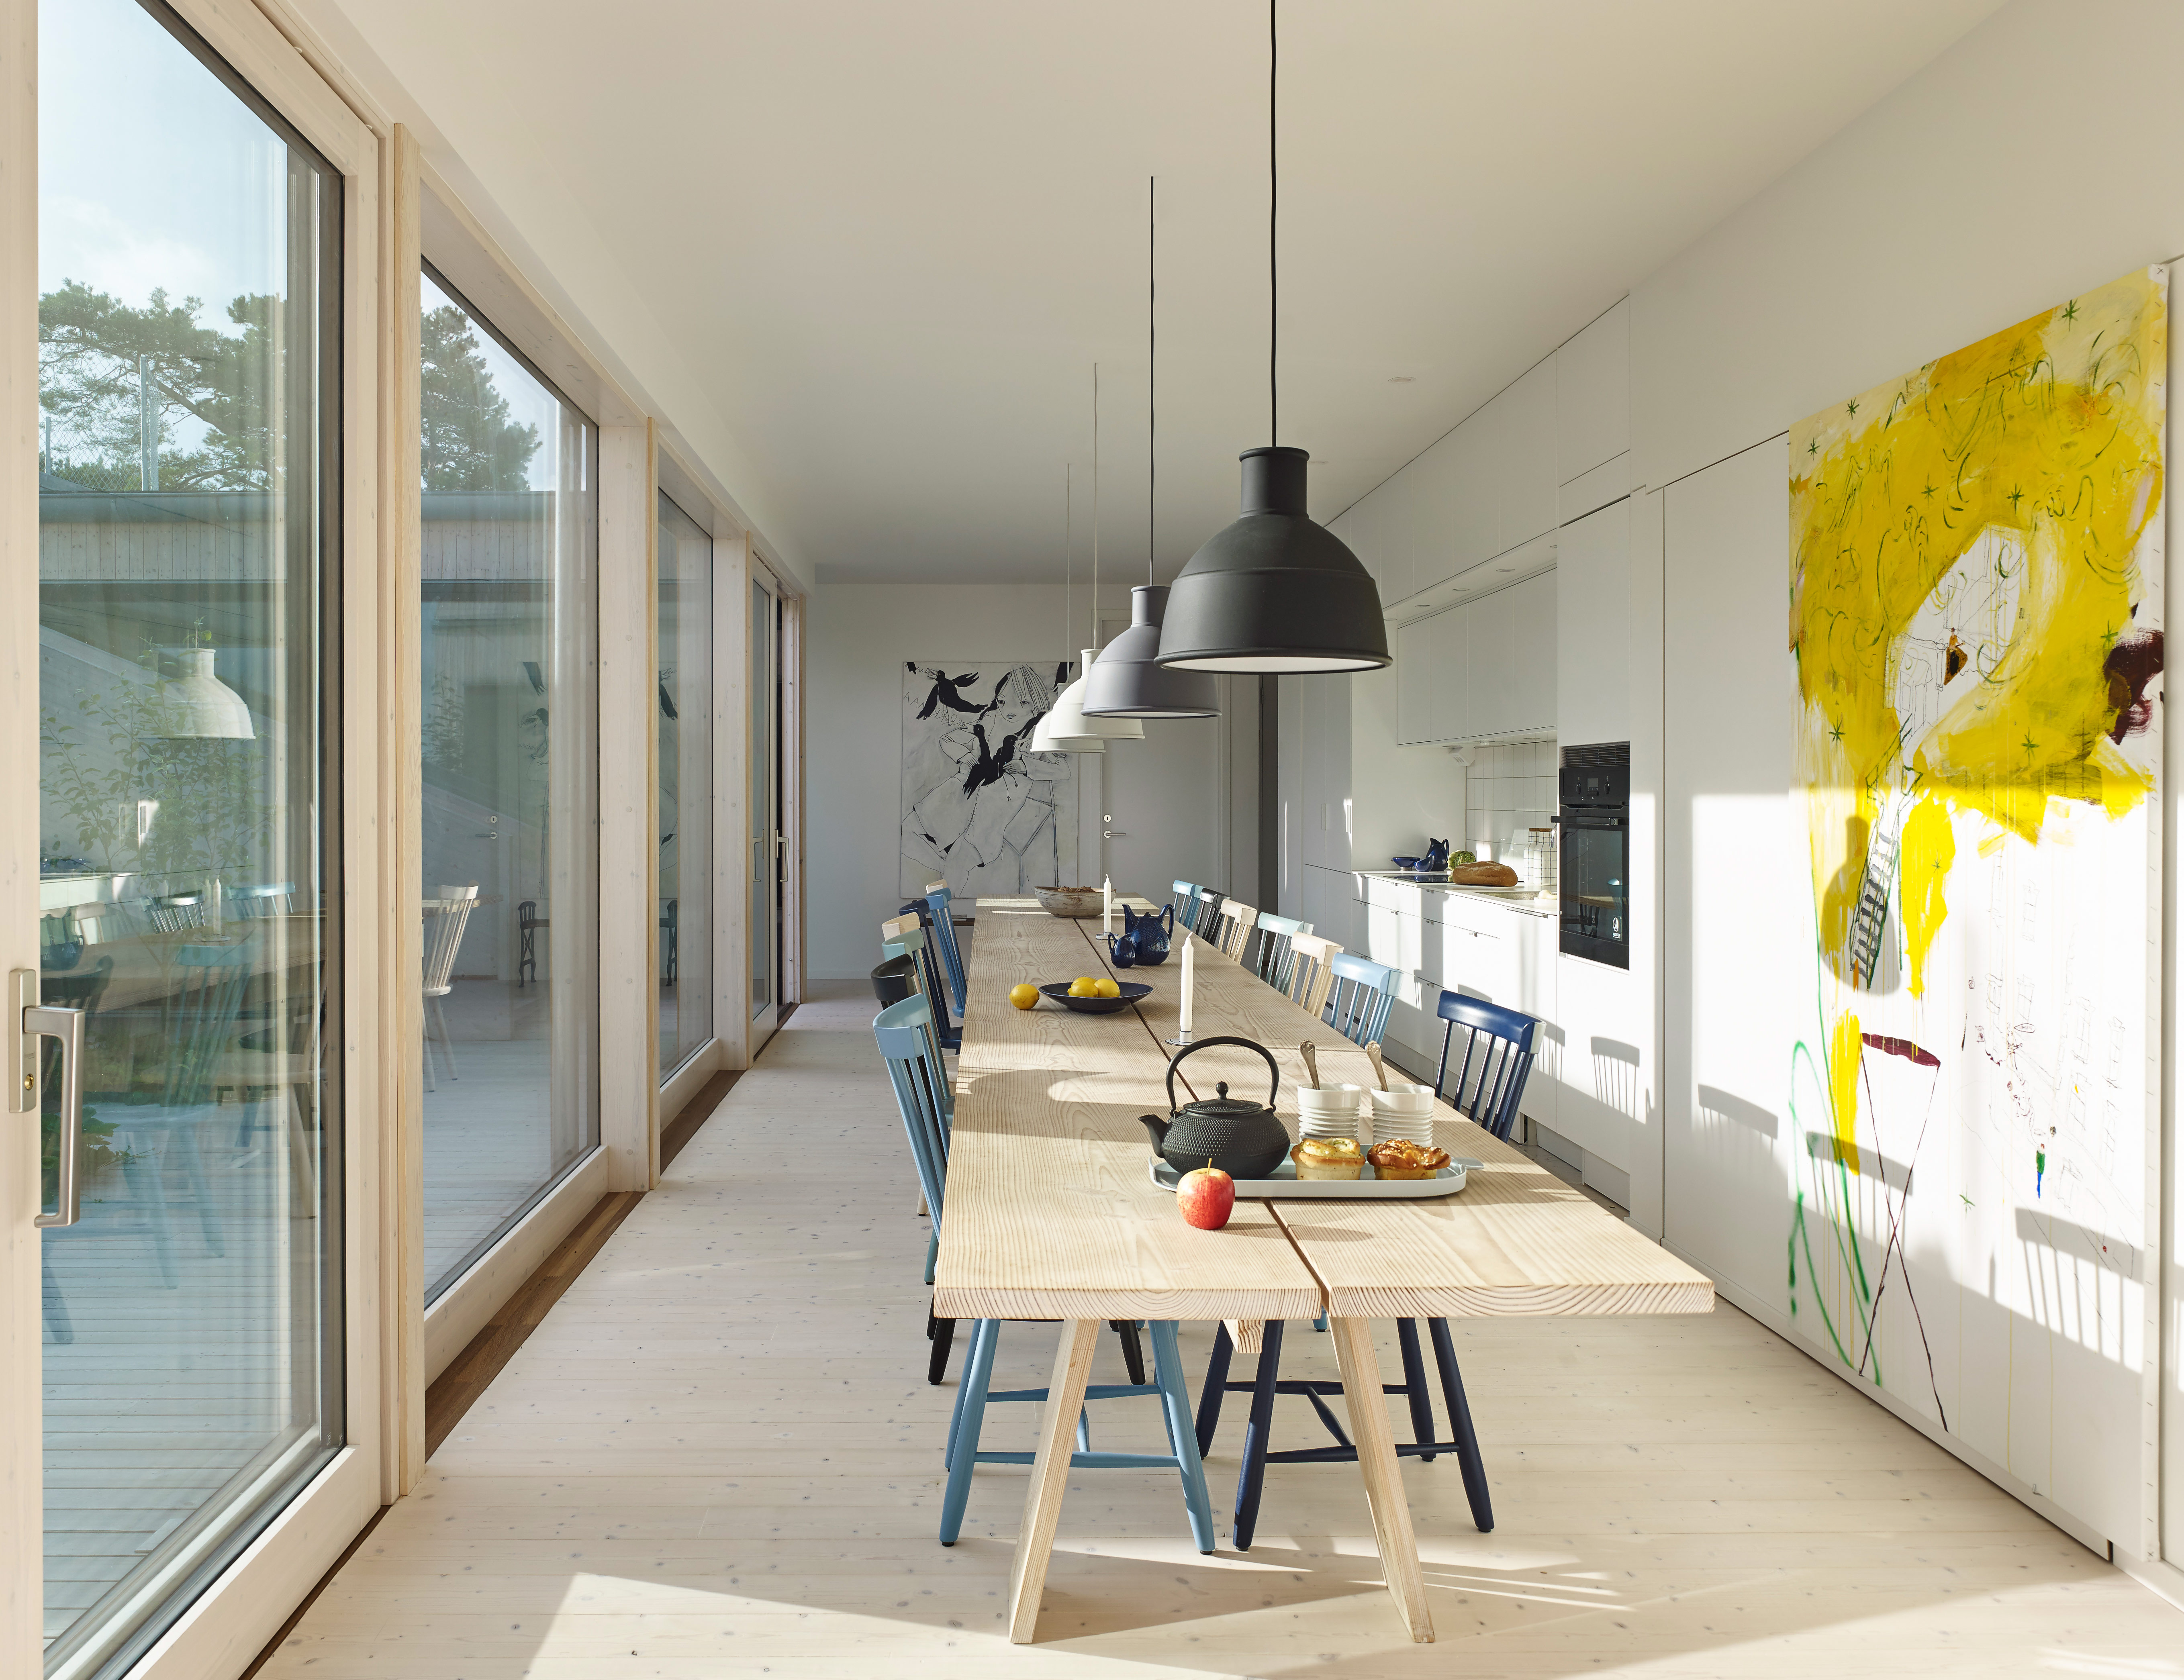 A custom table designed by Staffan Holm sits under Unfold pendants by Form Us With Love for Muuto and features Lilla Åland chairs by Carl Malmsten for Stolab